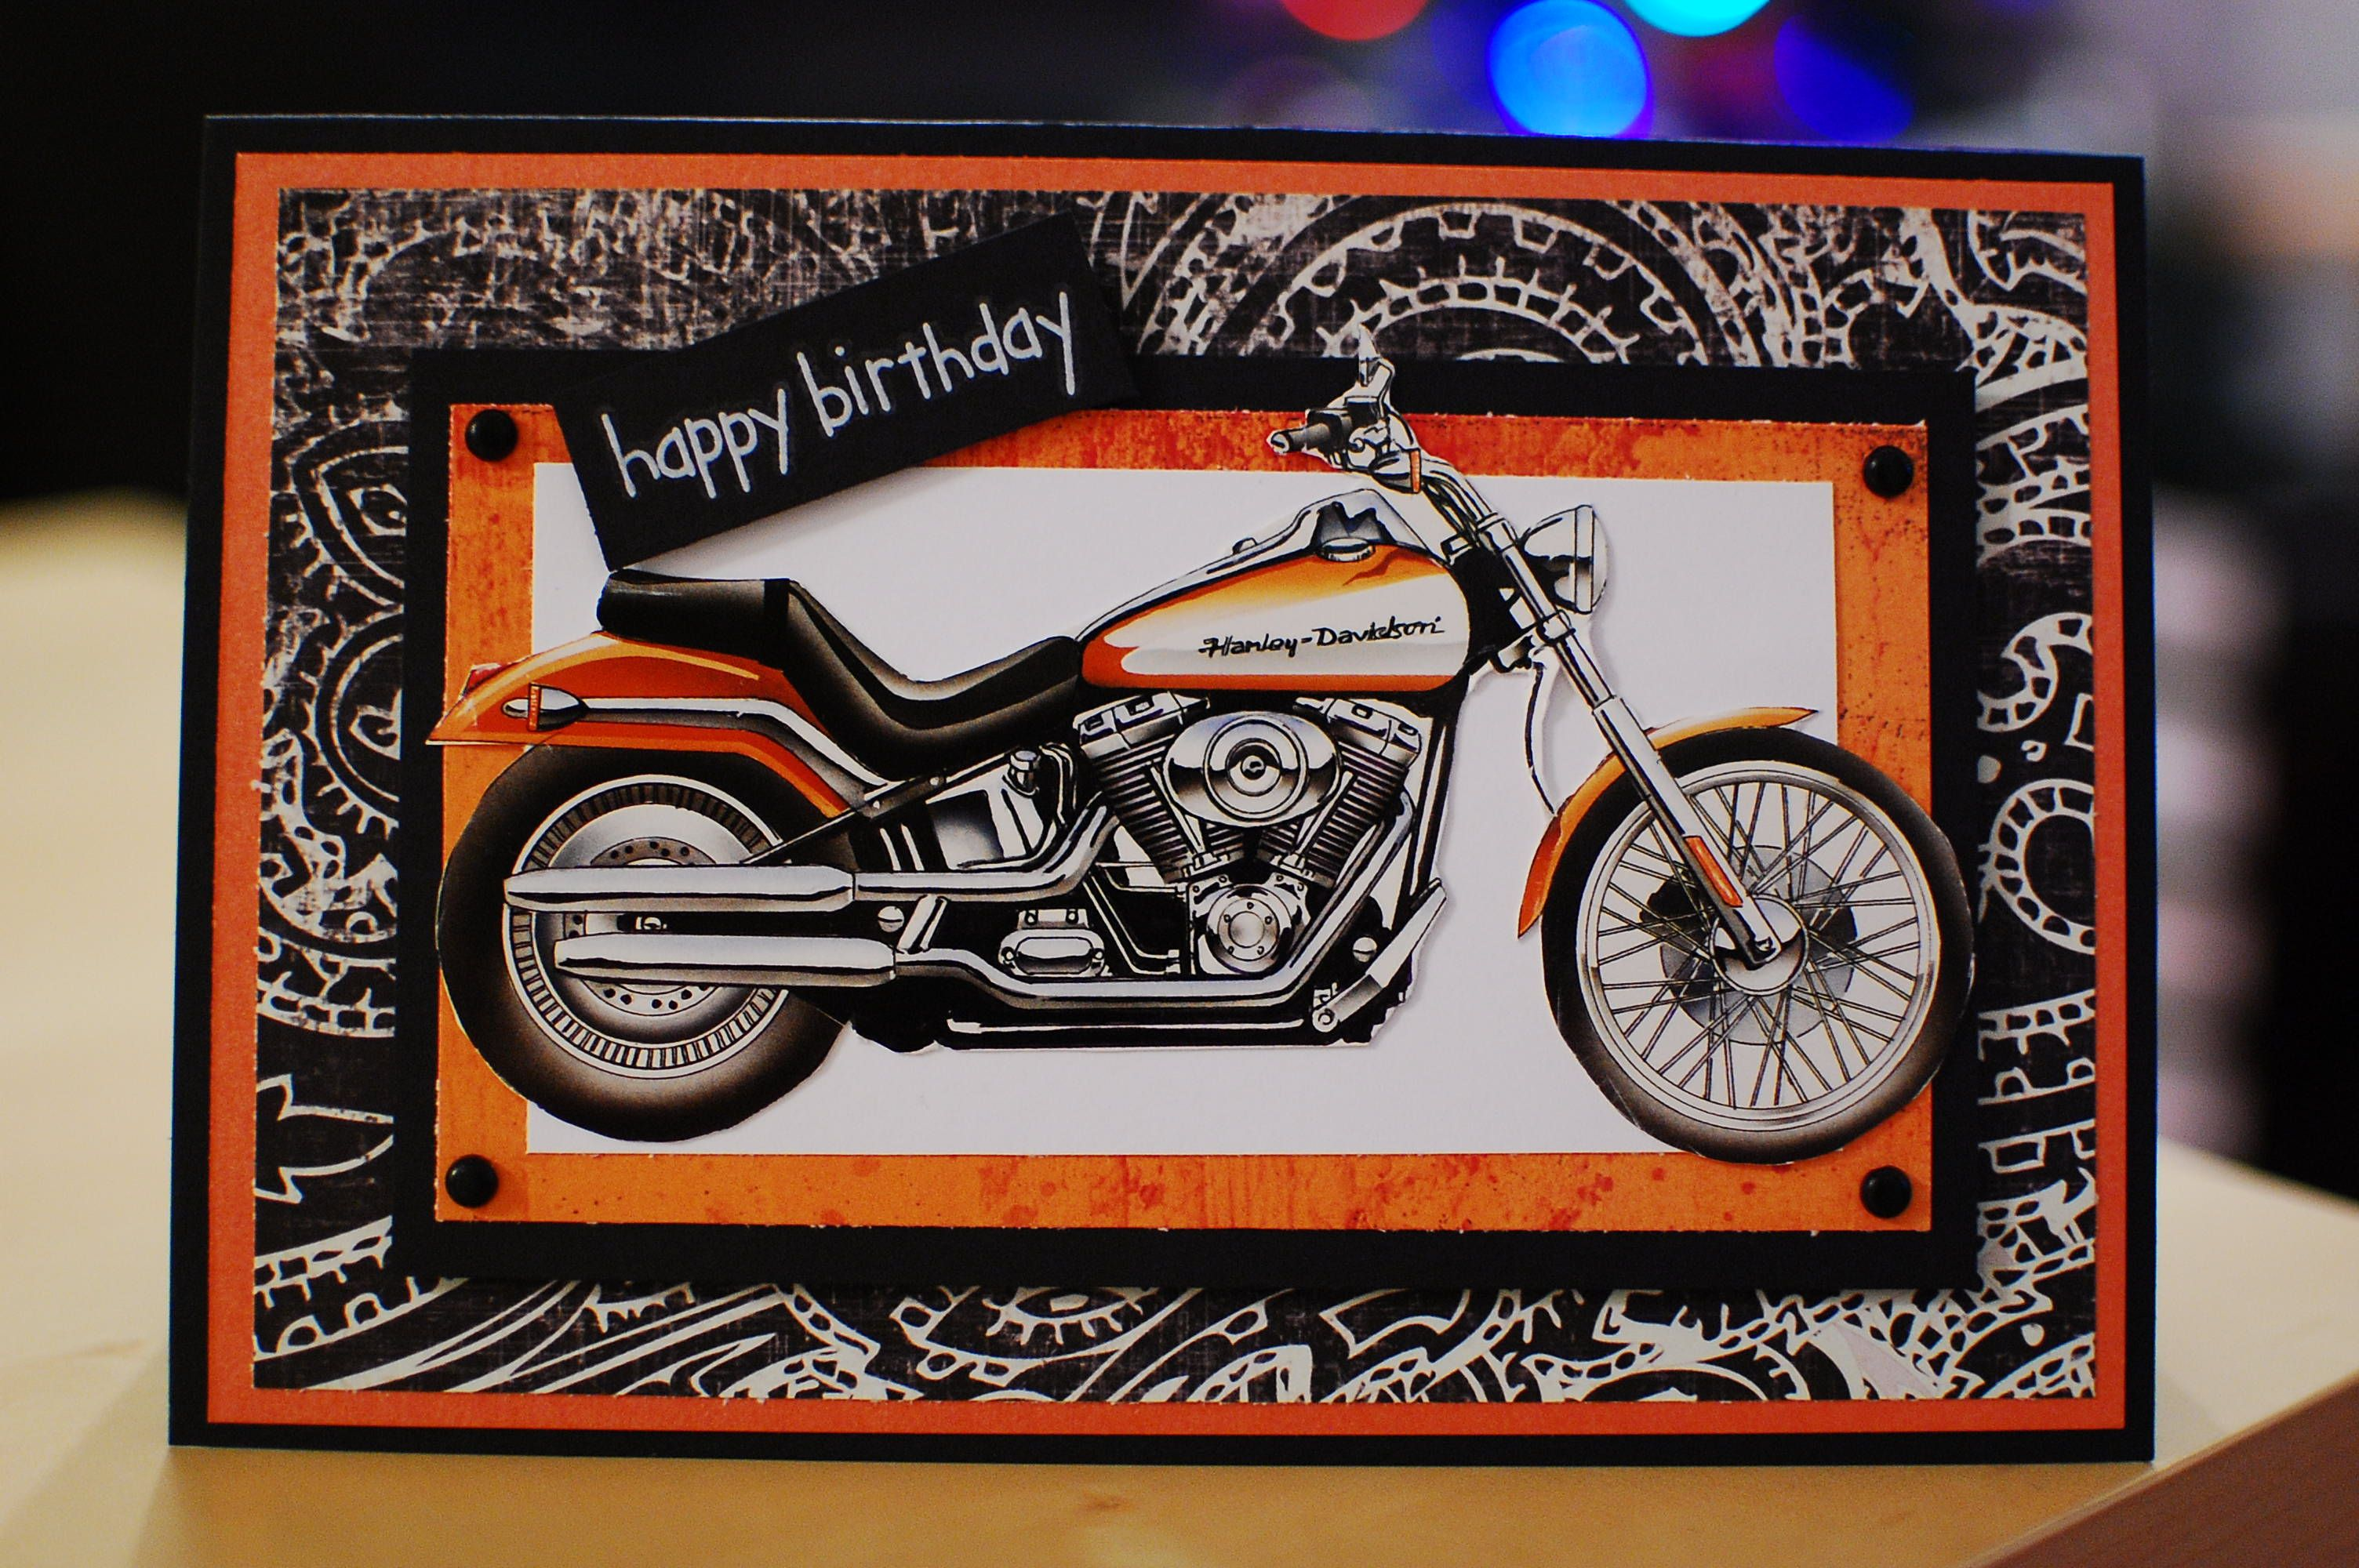 Harley davidson birthday card favorite places spaces pinterest harley davidson birthday card m4hsunfo